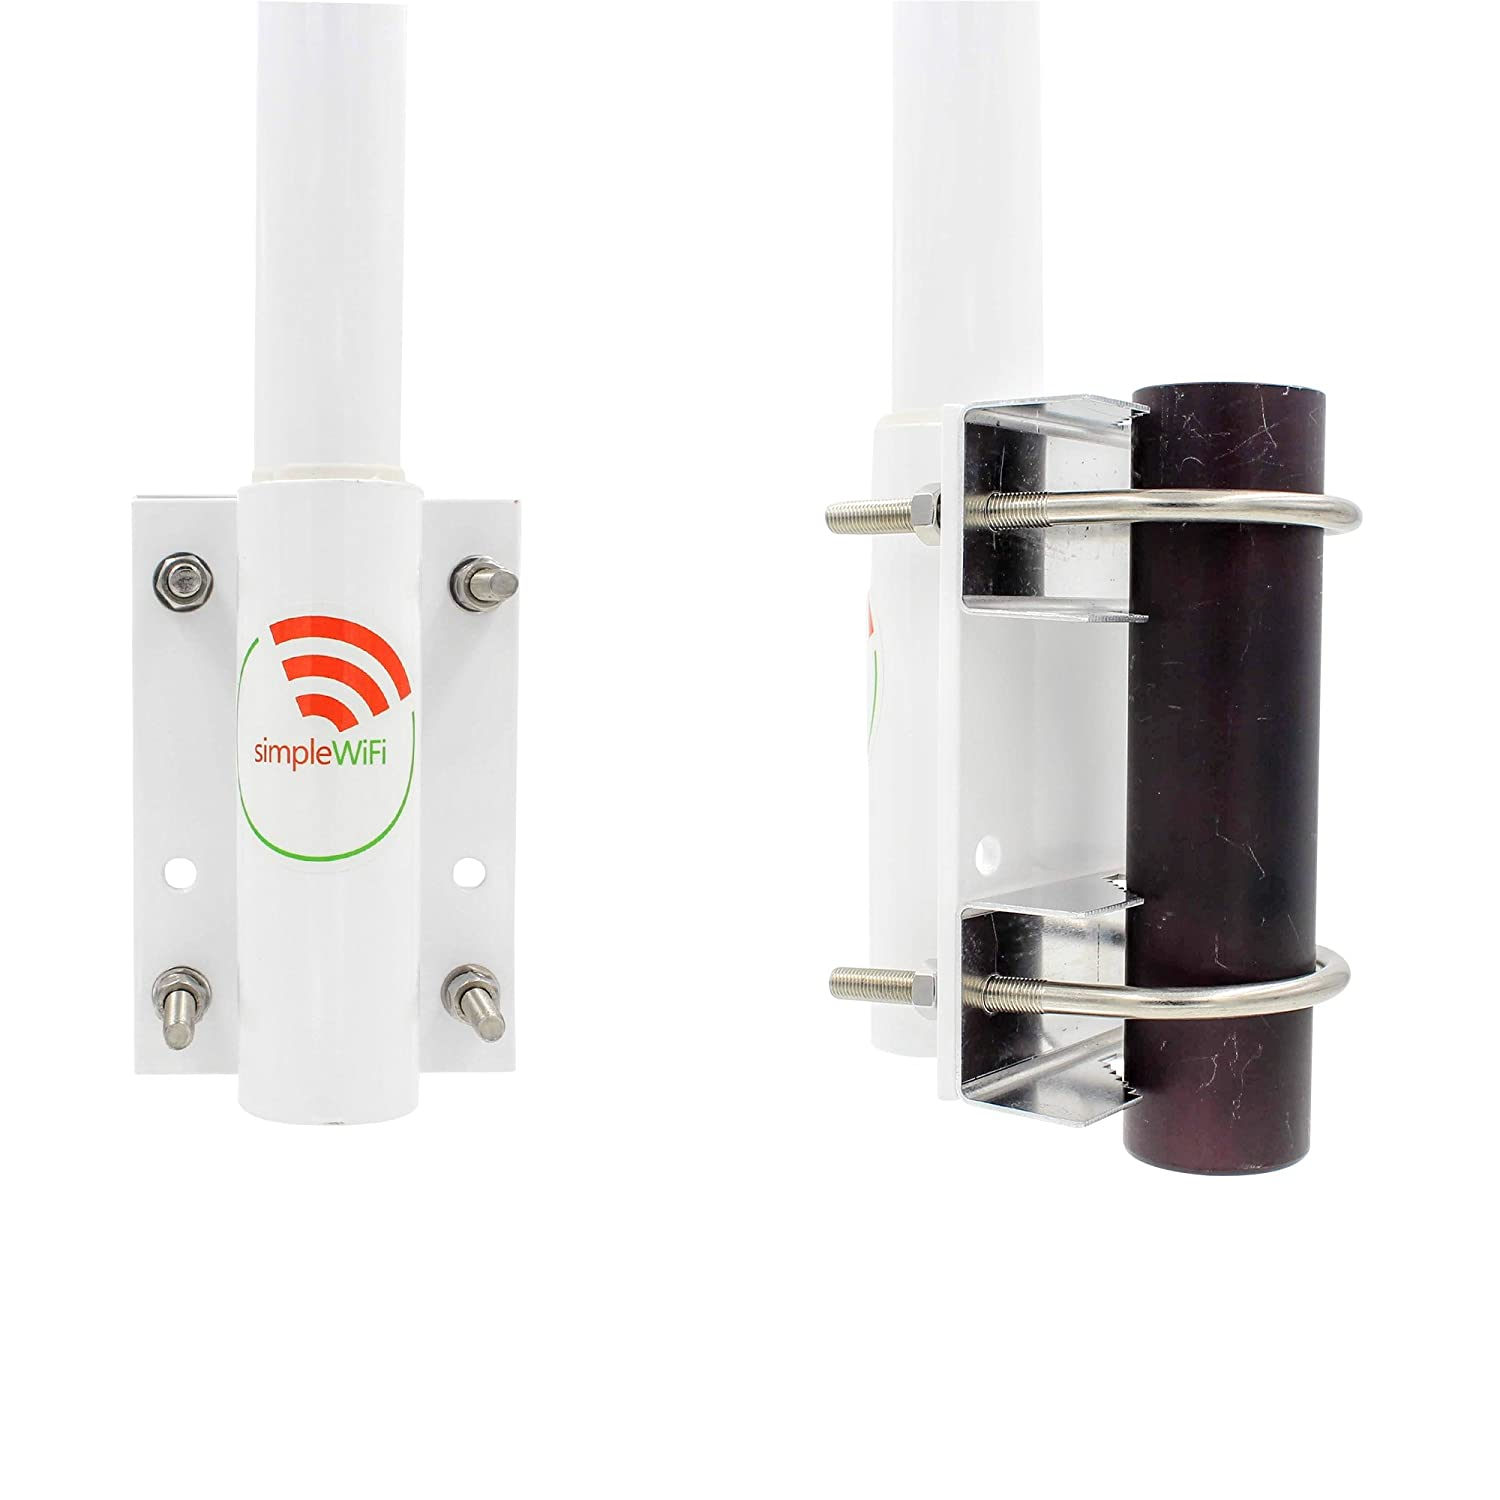 Antenna World Om2415hd 15 Dbi Omni Directional Wi Fi Ha2403gtnf 3 Watt 24 Ghz Outdoor 80211b G N Wifi Amplifier Professional Grade Computers Accessories